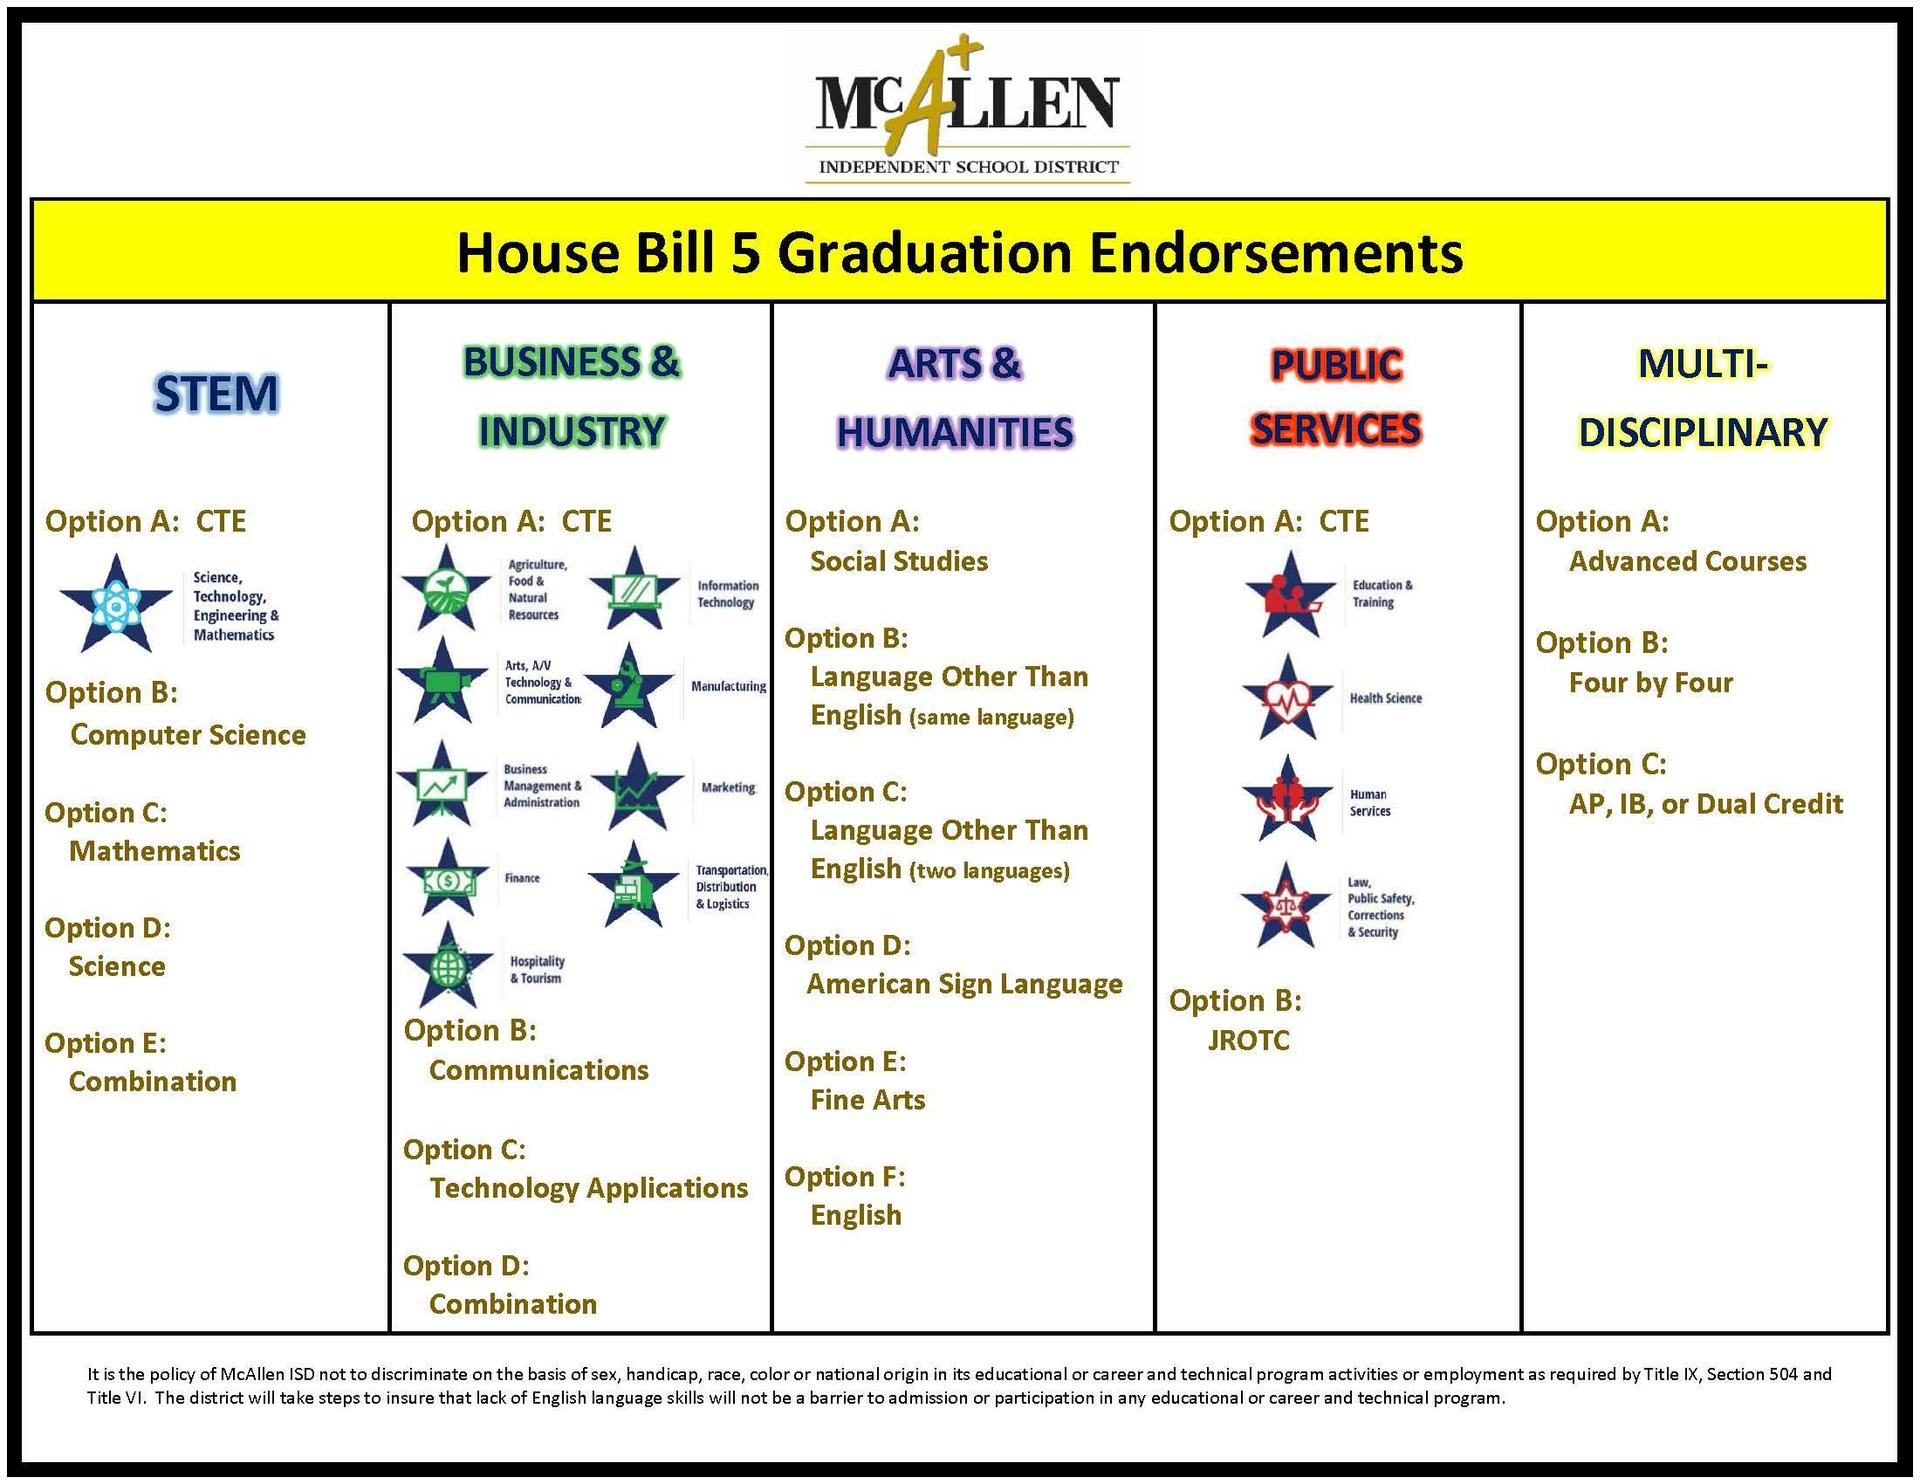 House Bill 5 Graduation Endorsements